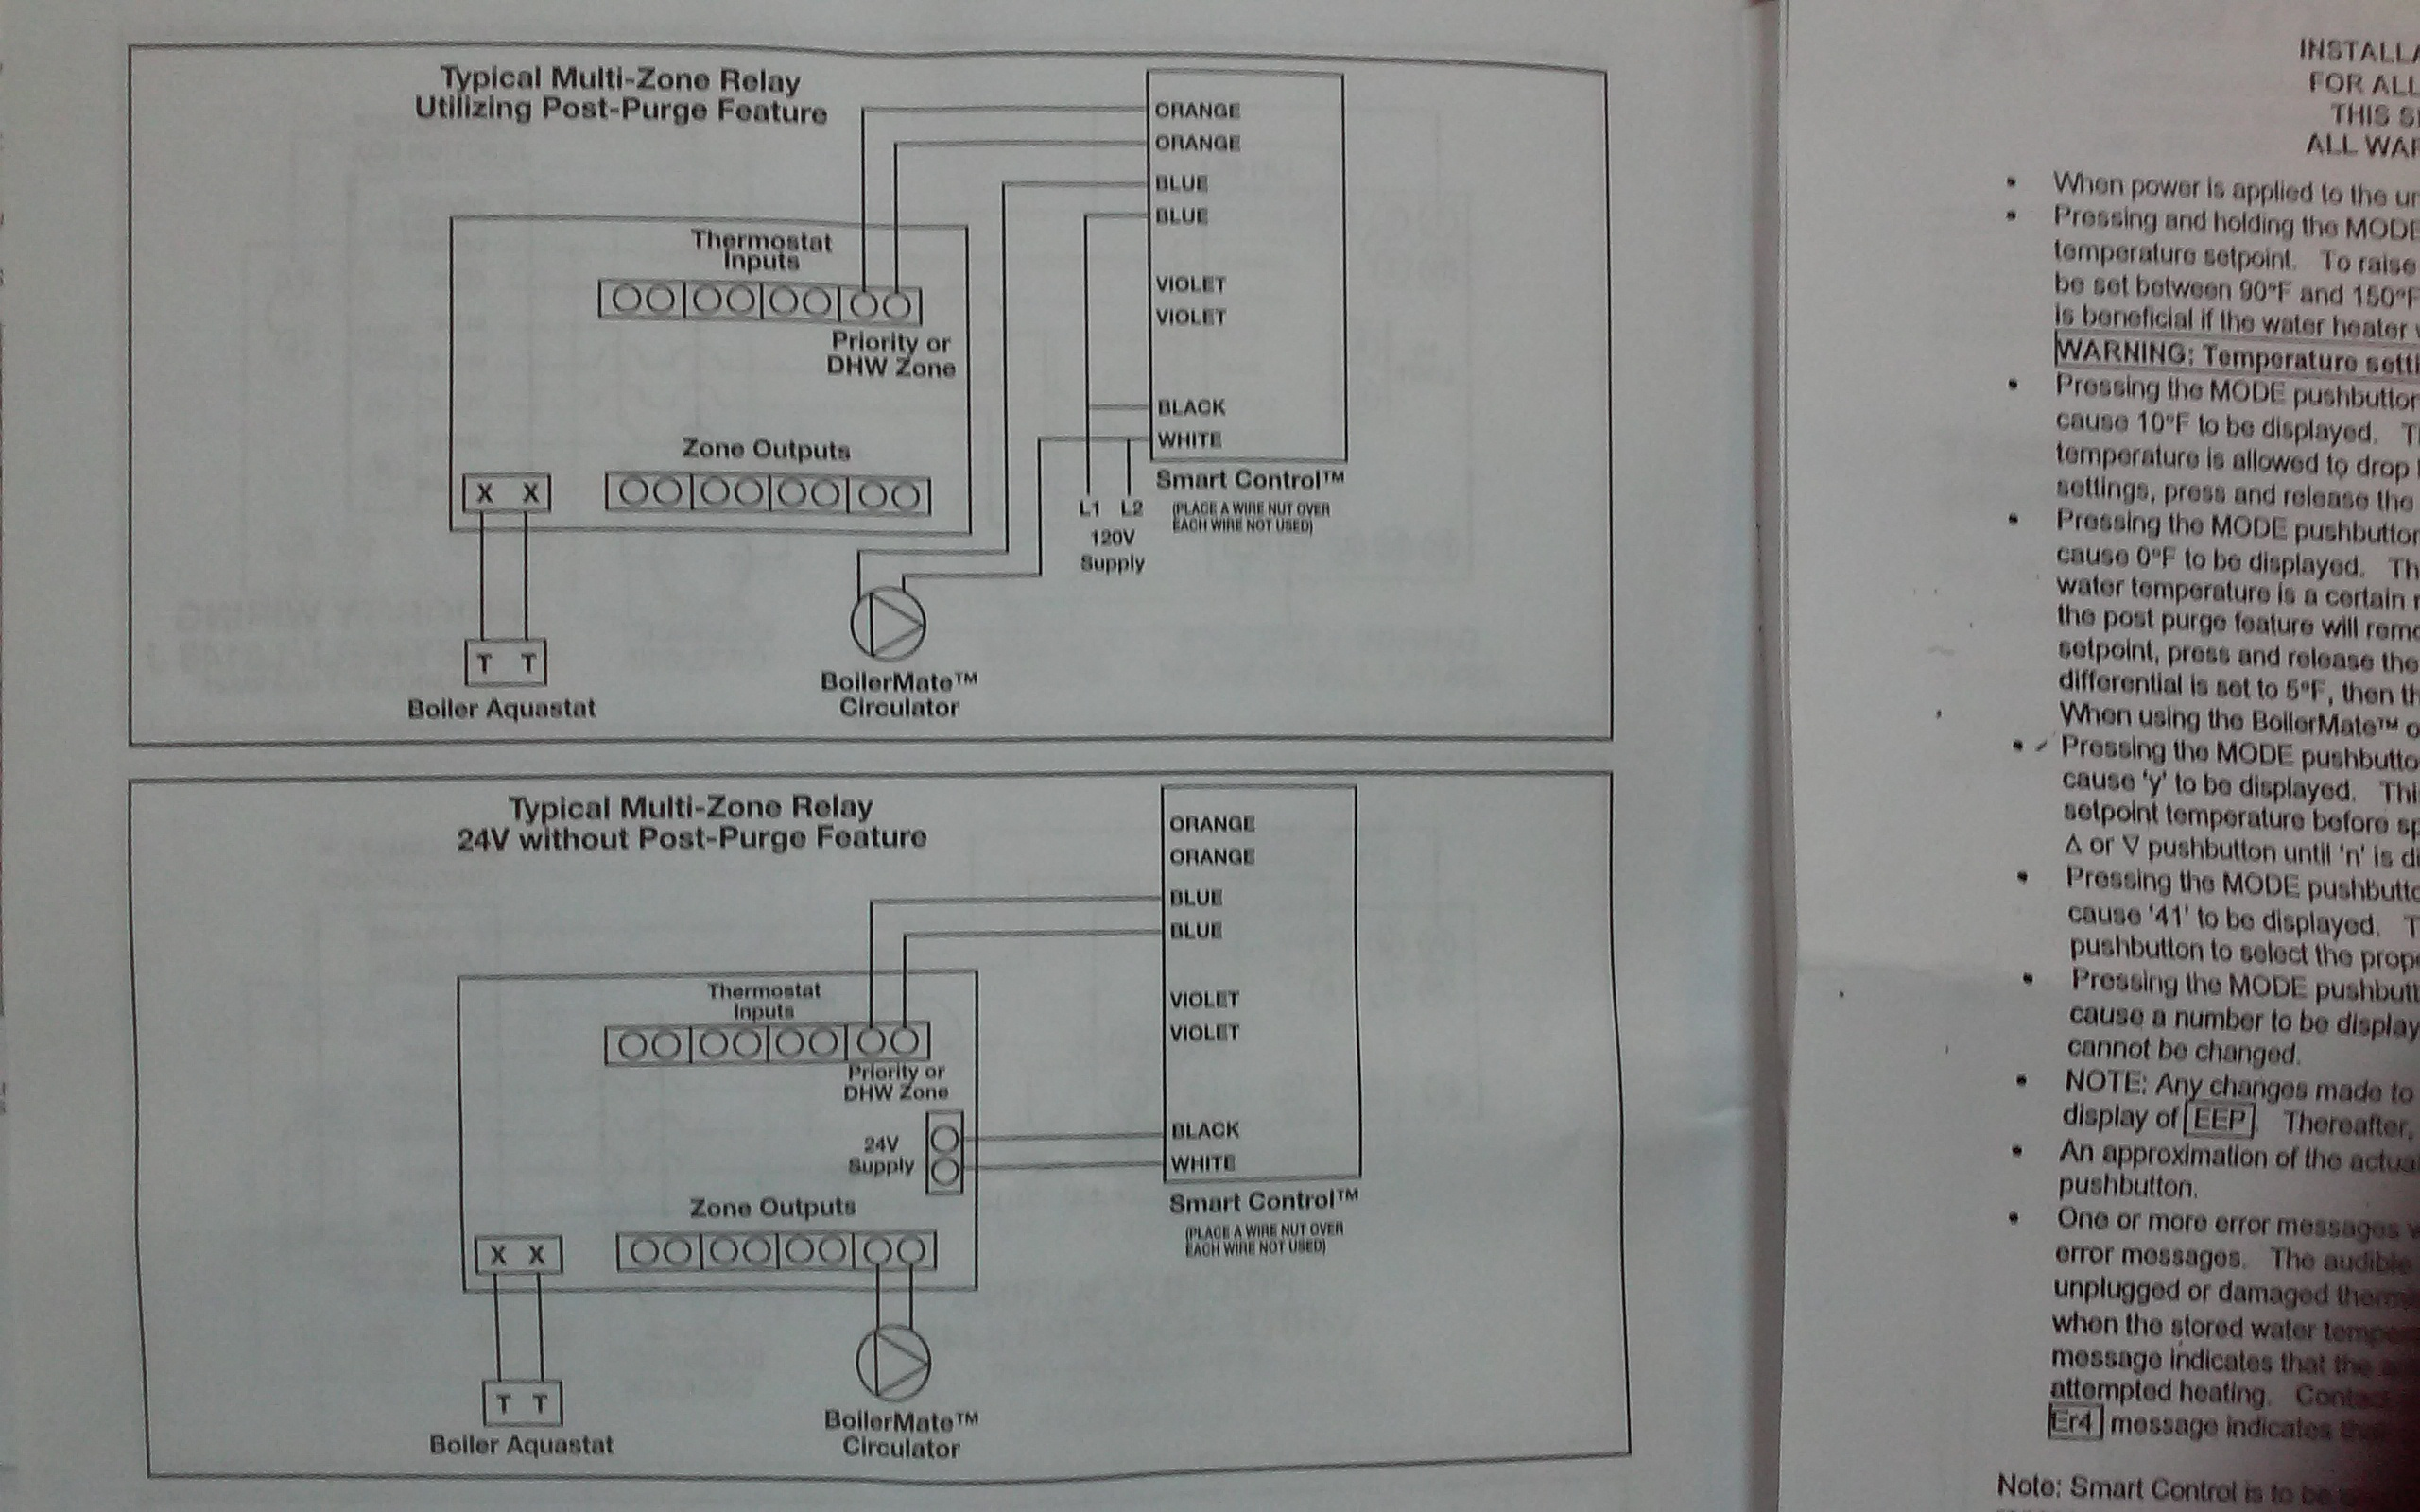 I contacted you yesterday about wiring a new boiler to an indirect on plug for water heater, wiring diagram for water pump, compressor for water heater, motor for water heater, circuit breaker for water heater, wire for water heater, timer for water heater, thermocouple for water heater, hose for water heater, switch for water heater, exhaust for water heater, coil for water heater, expansion tank for water heater, thermostat for water heater, valve for water heater, piping diagram for water heater, cabinet for water heater, thermal fuse for water heater, regulator for water heater, cover for water heater,